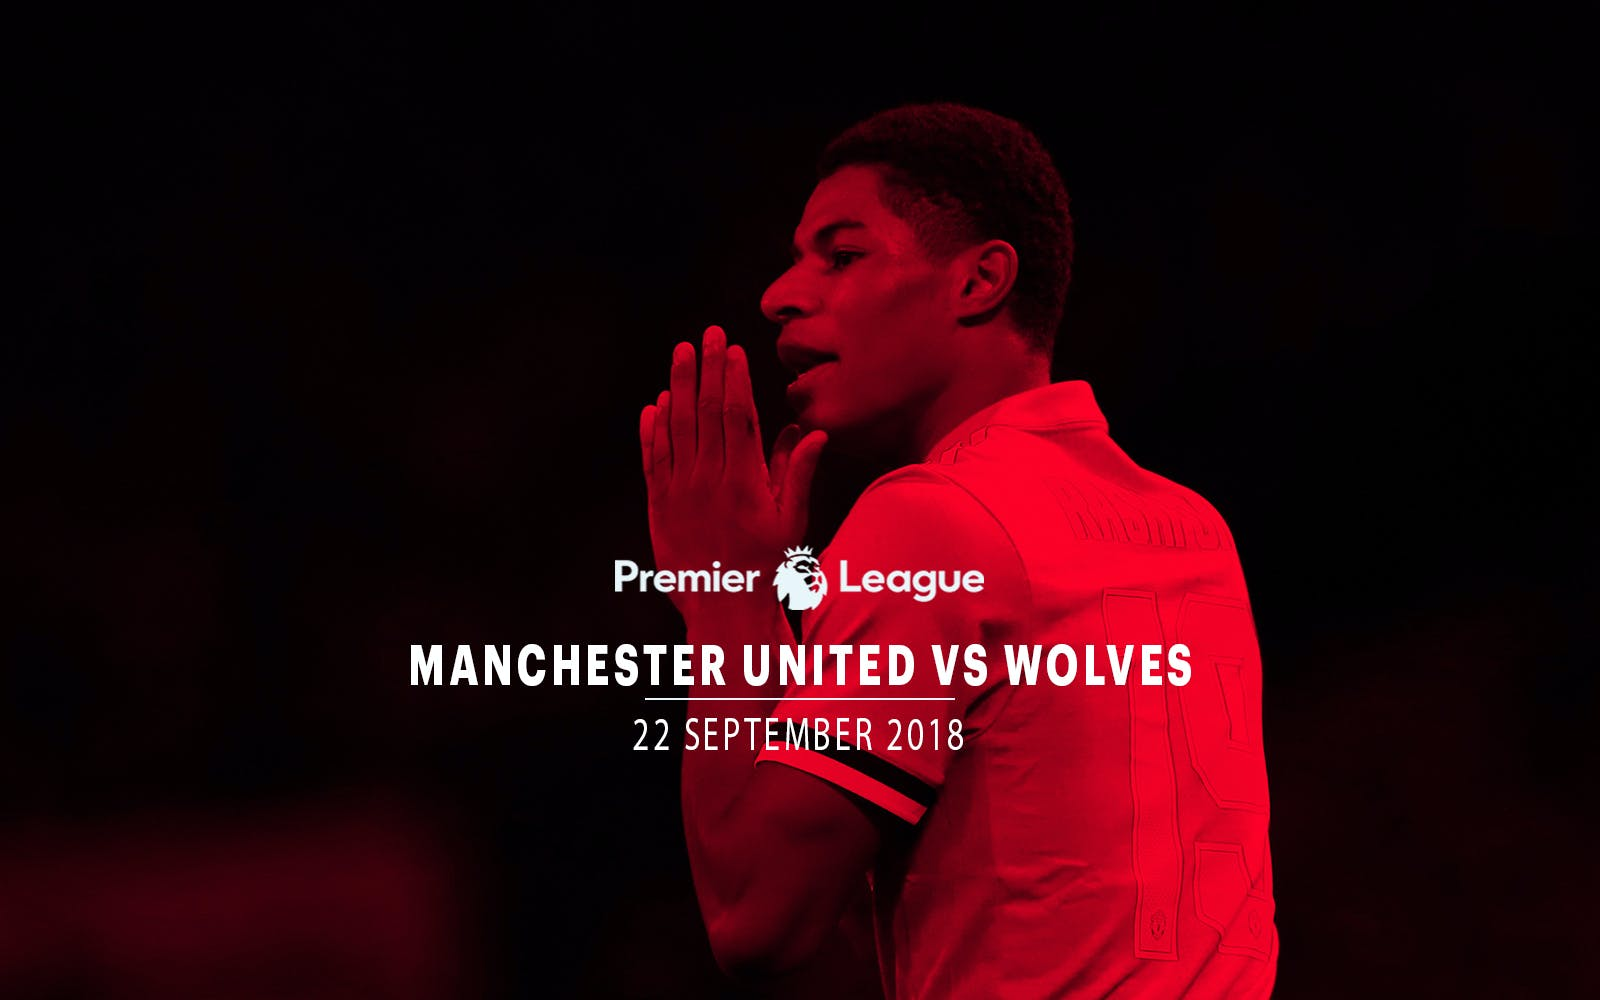 manchester united vs wolves-22nd sept 2018-1